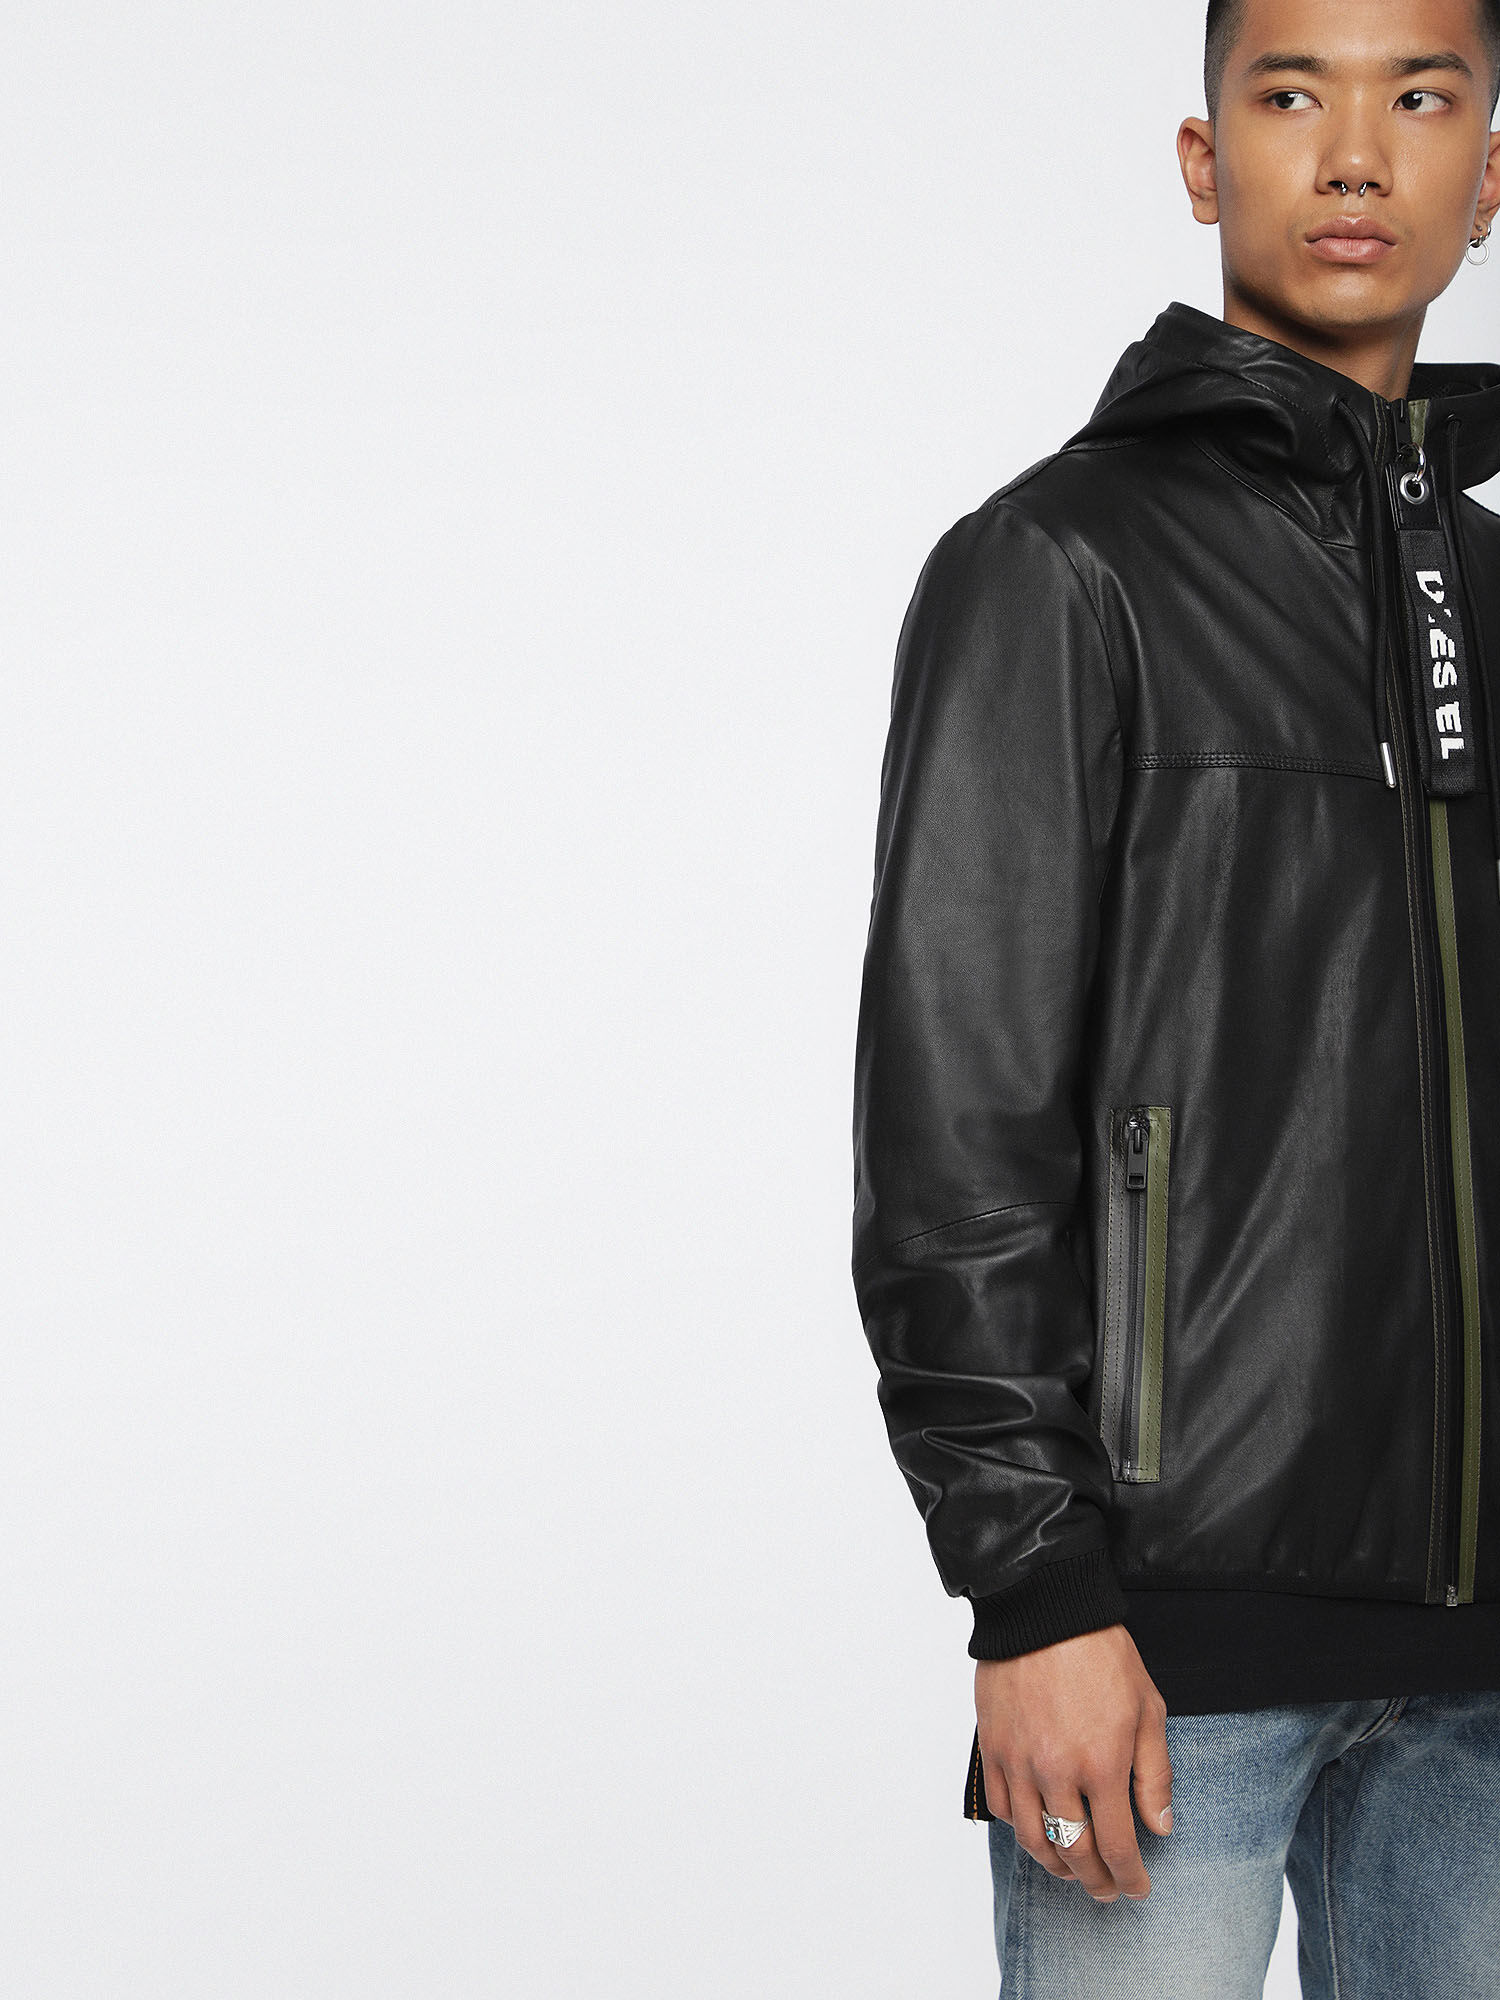 With Hunch The Homme Cuir De On Go Vestes qTI8x